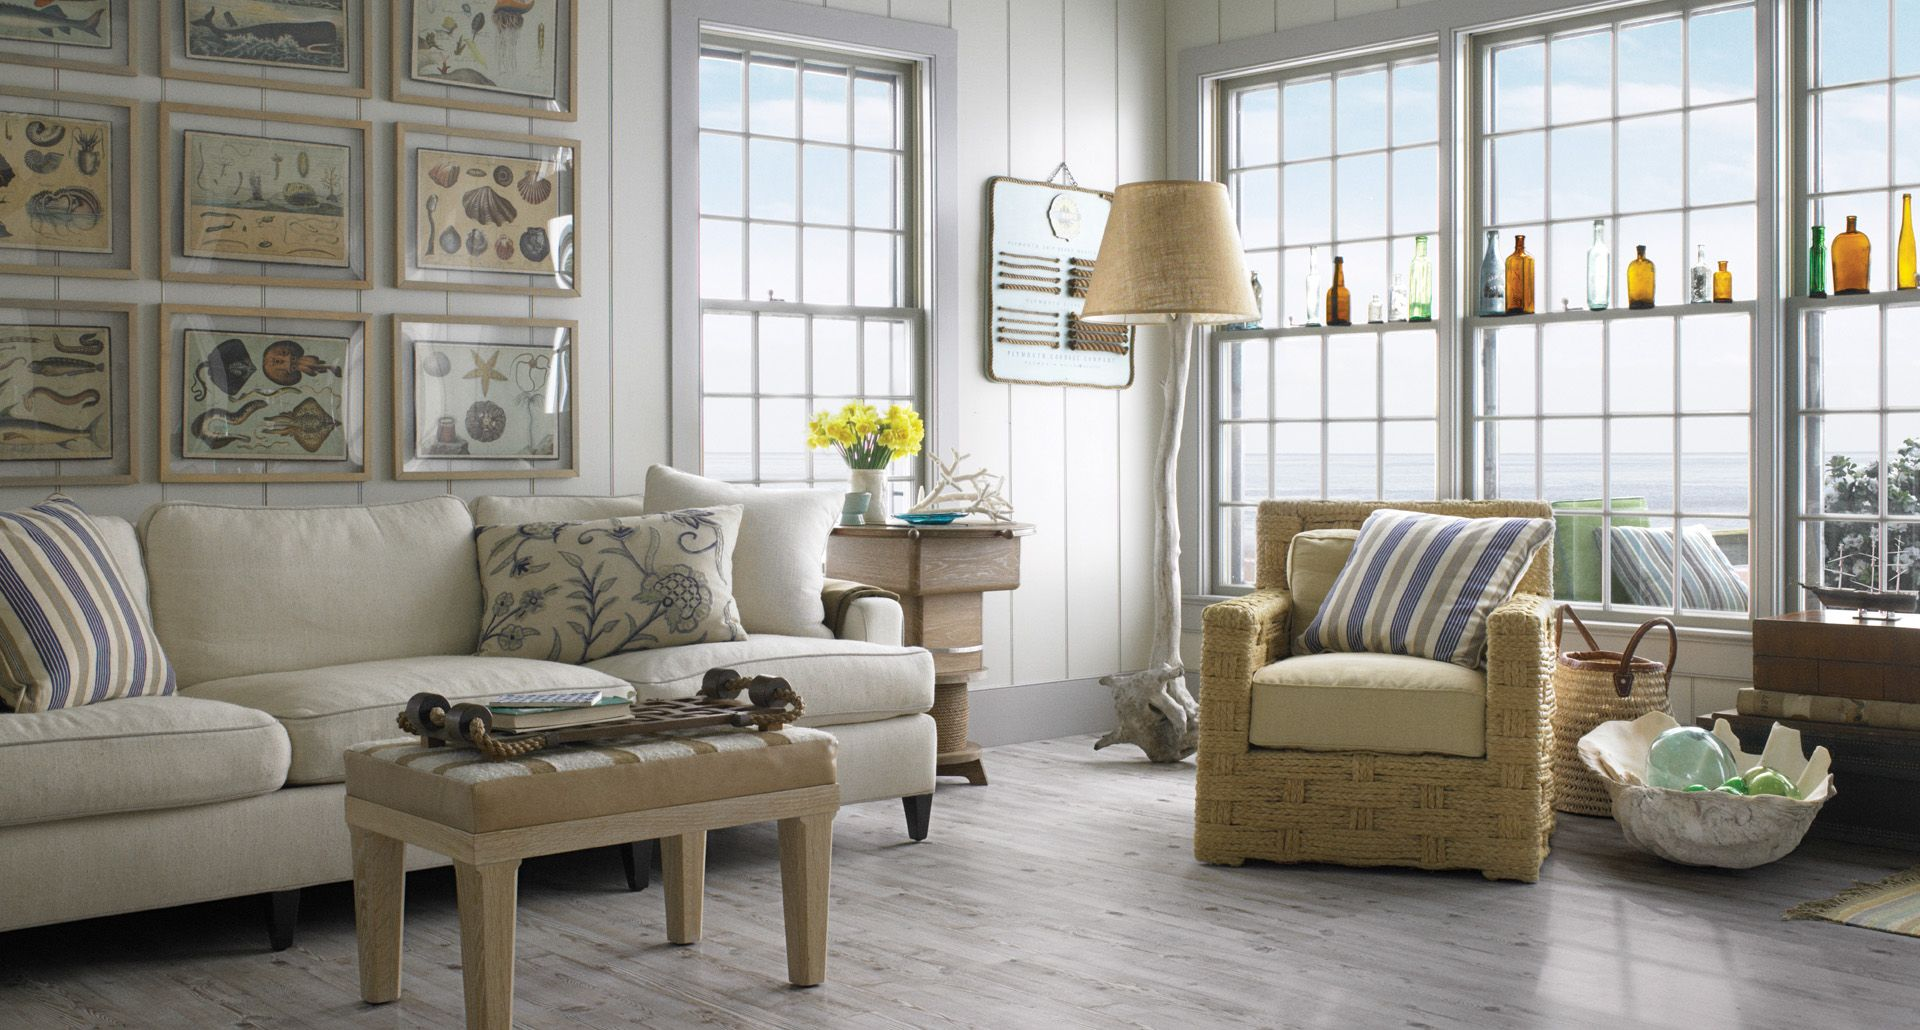 Driftwood Pine PERGO MaxR Laminate Floorings Grey Hues Does An Excellent Job Of Accentuating Vibrant